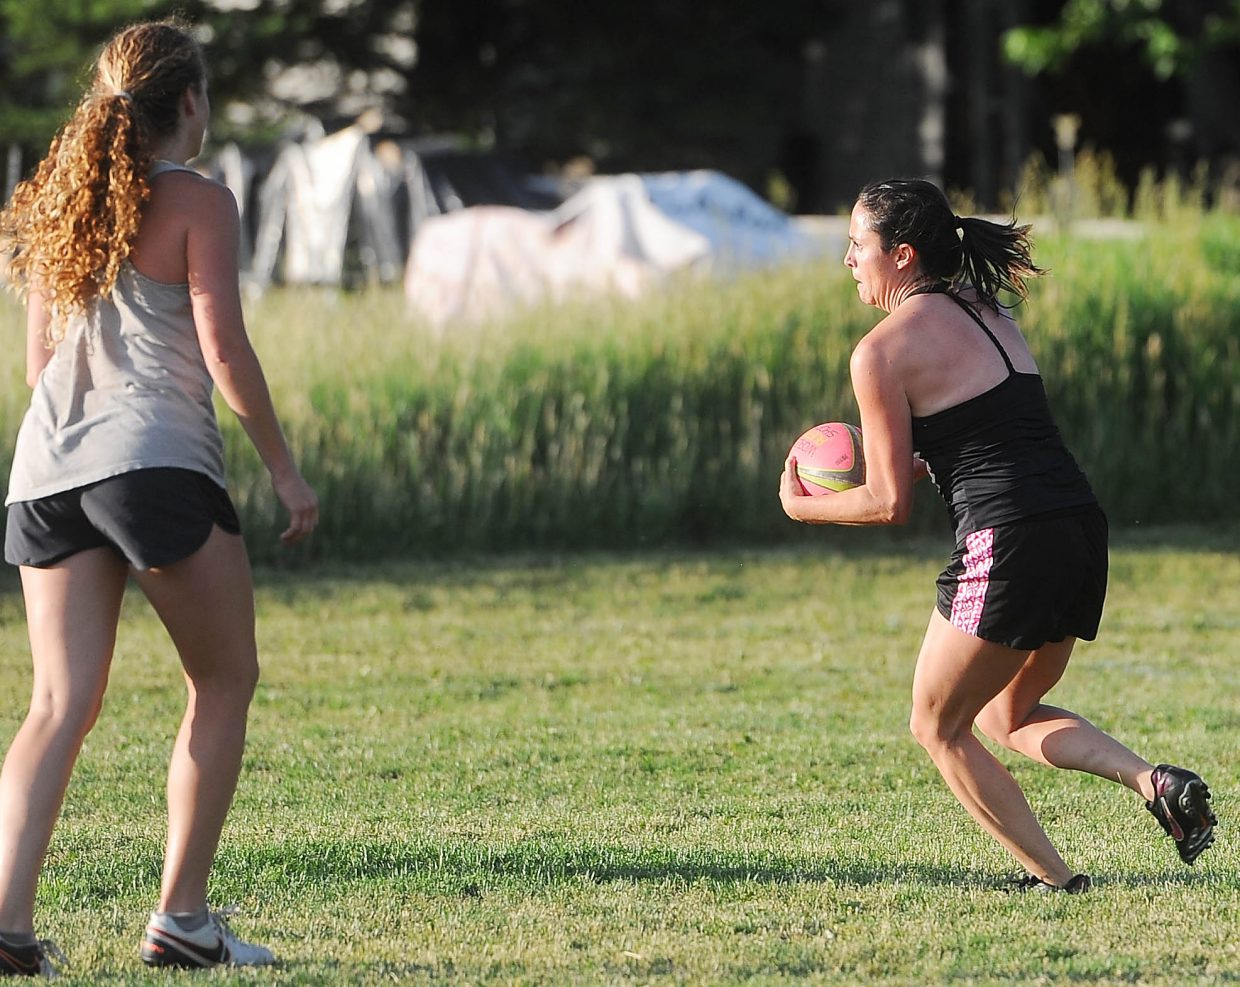 Sarah Tiedeken runs with the ball at rugby practice on Wednesday, June 27.